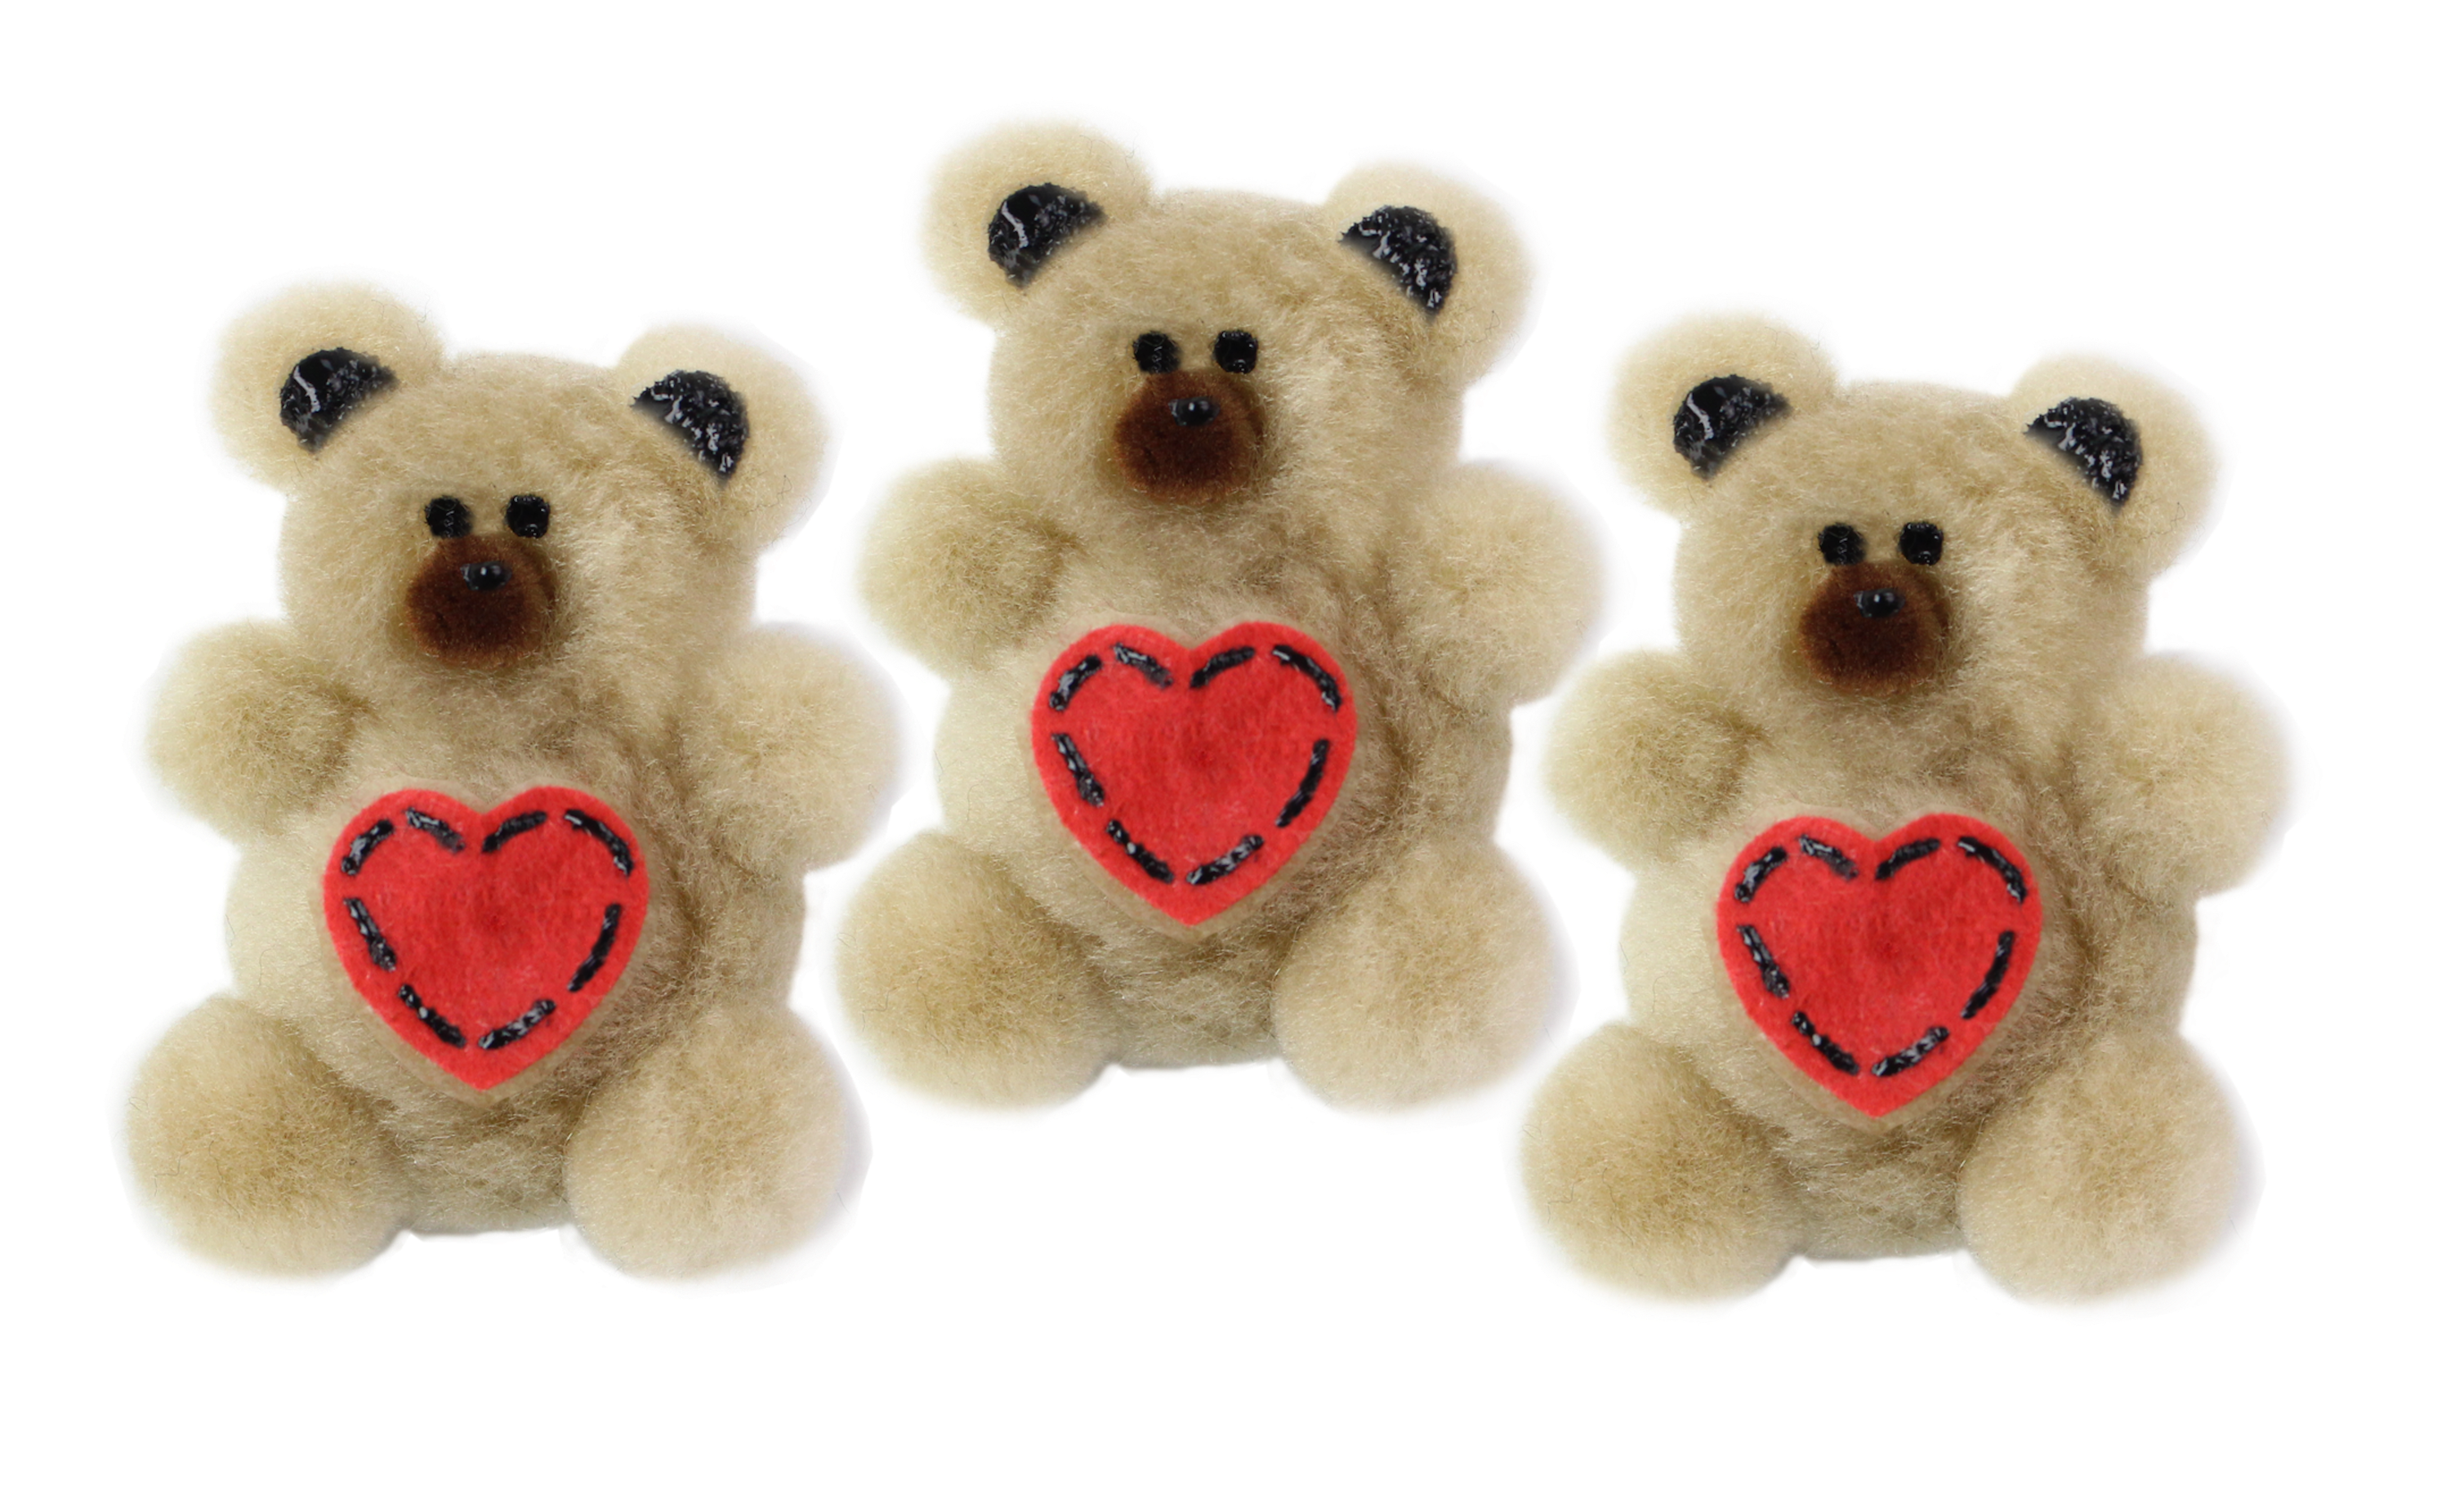 Make a cute DIY Pom Pom Teddy Bear to share with your dolls and friends!